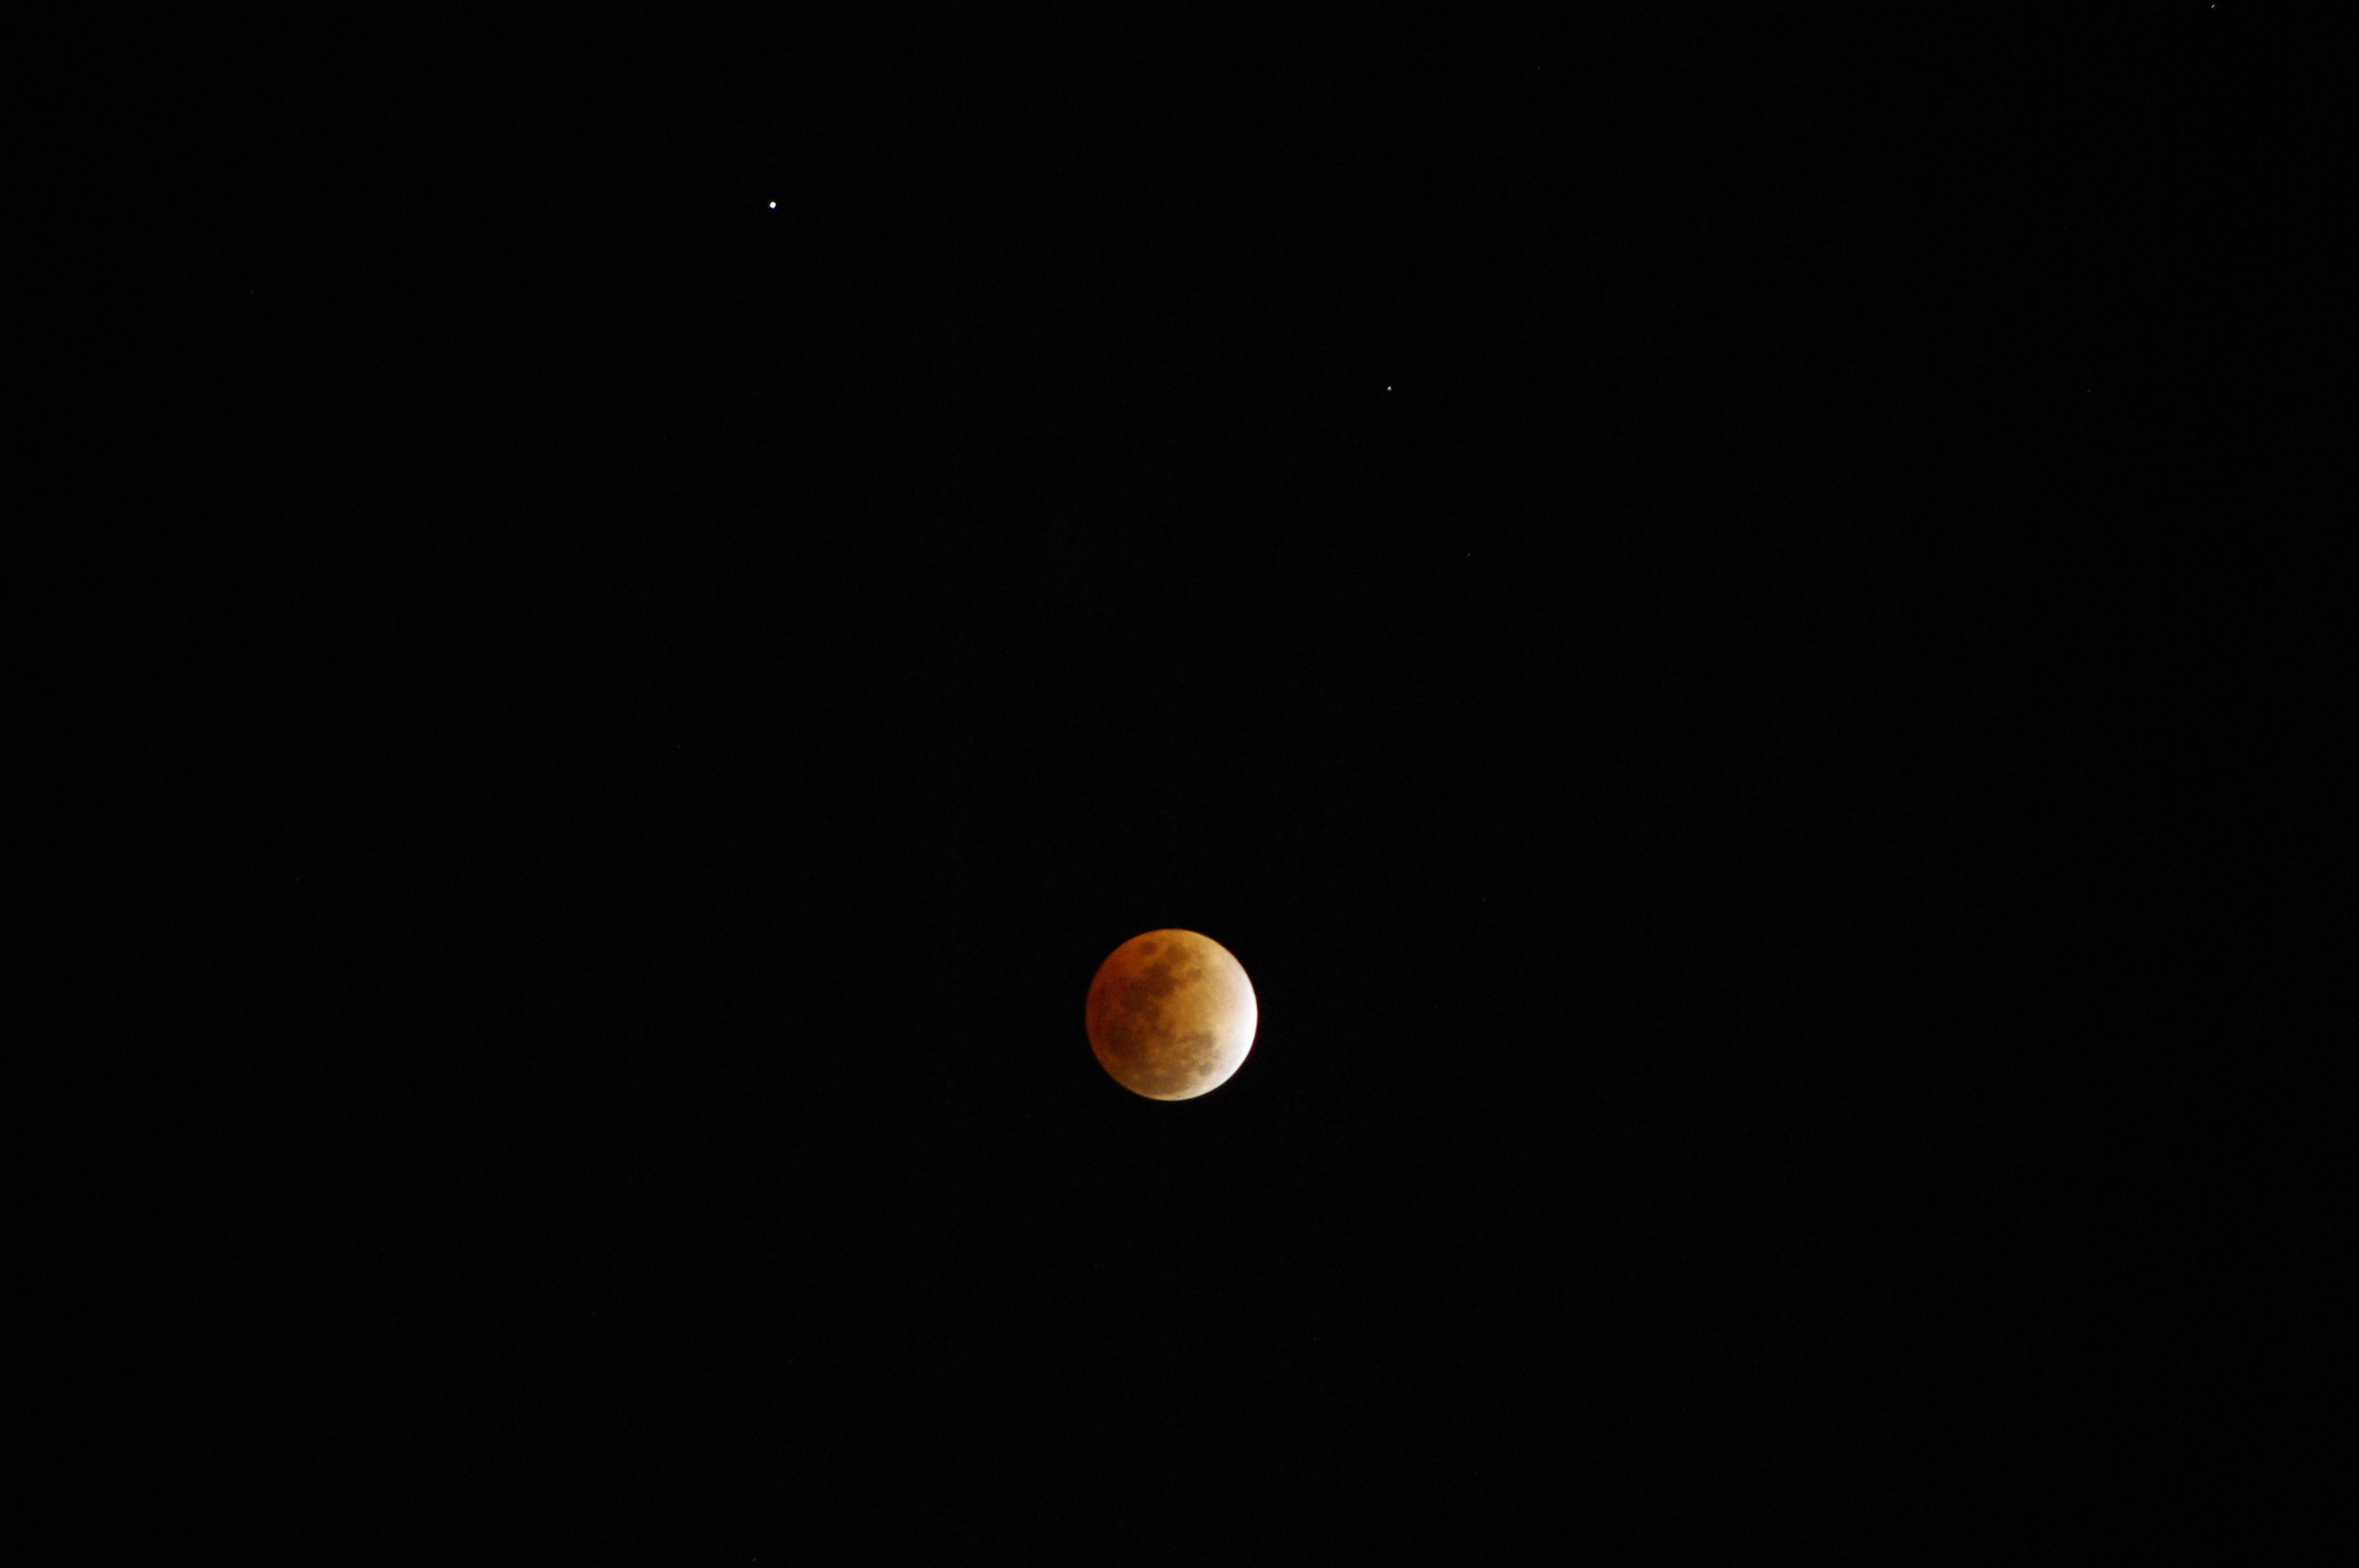 lunar_eclipse_with_saturn_imgp4118